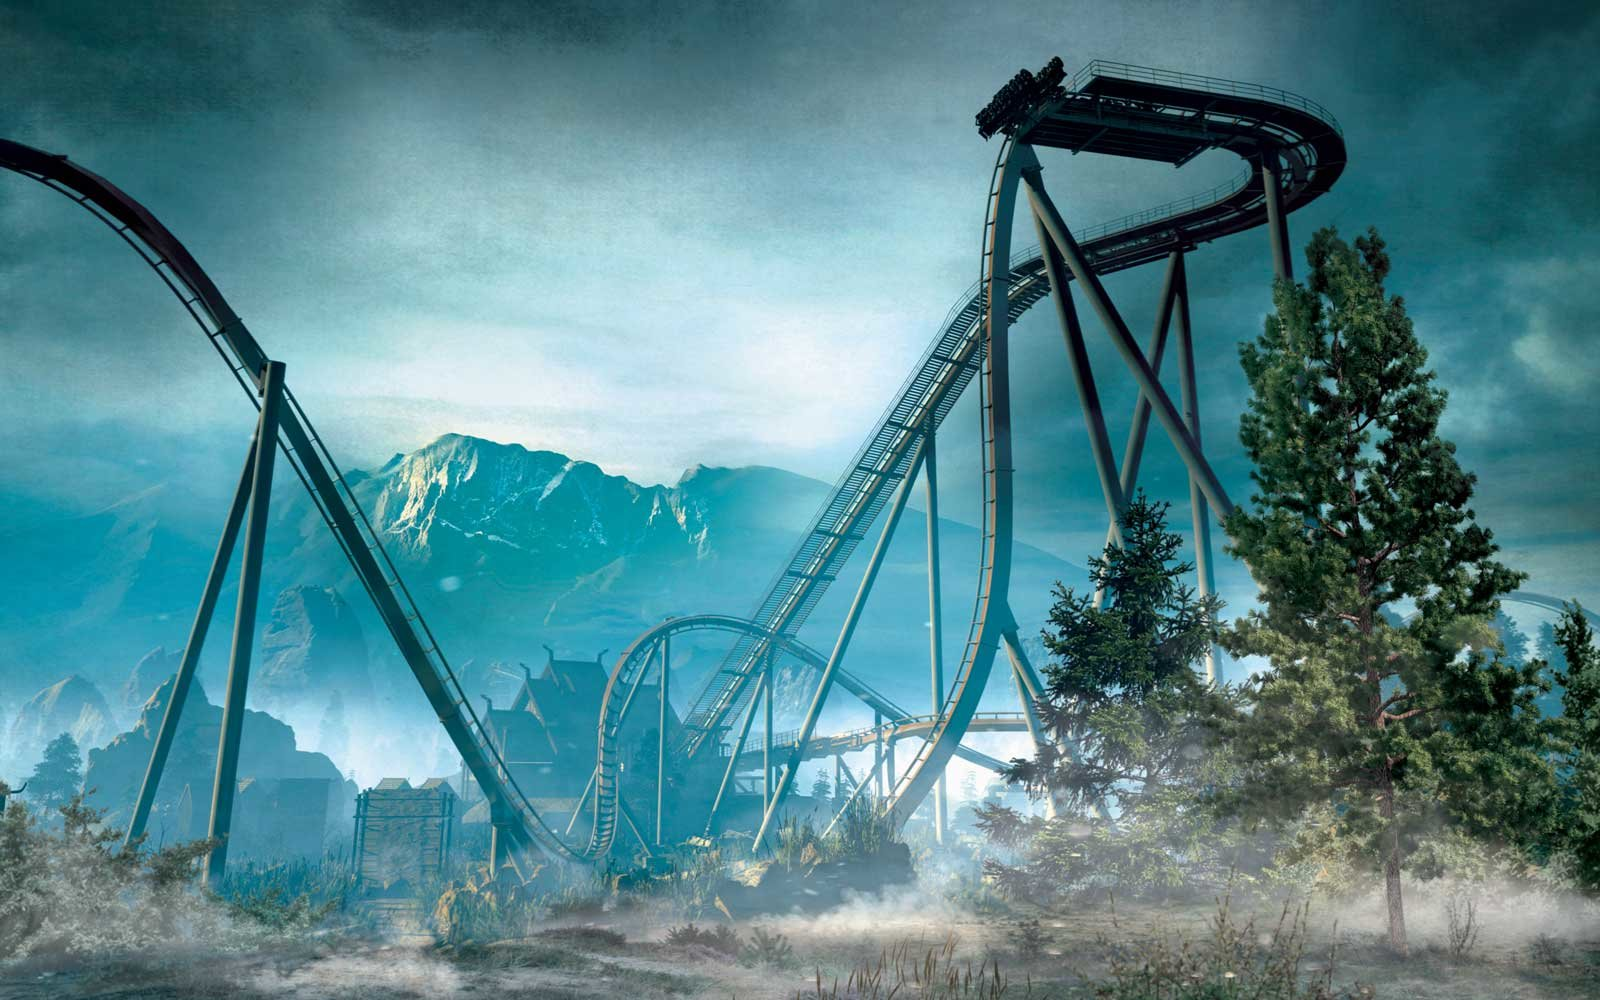 Valkyria dive coaster coming to Liseberg amusement park in 2018